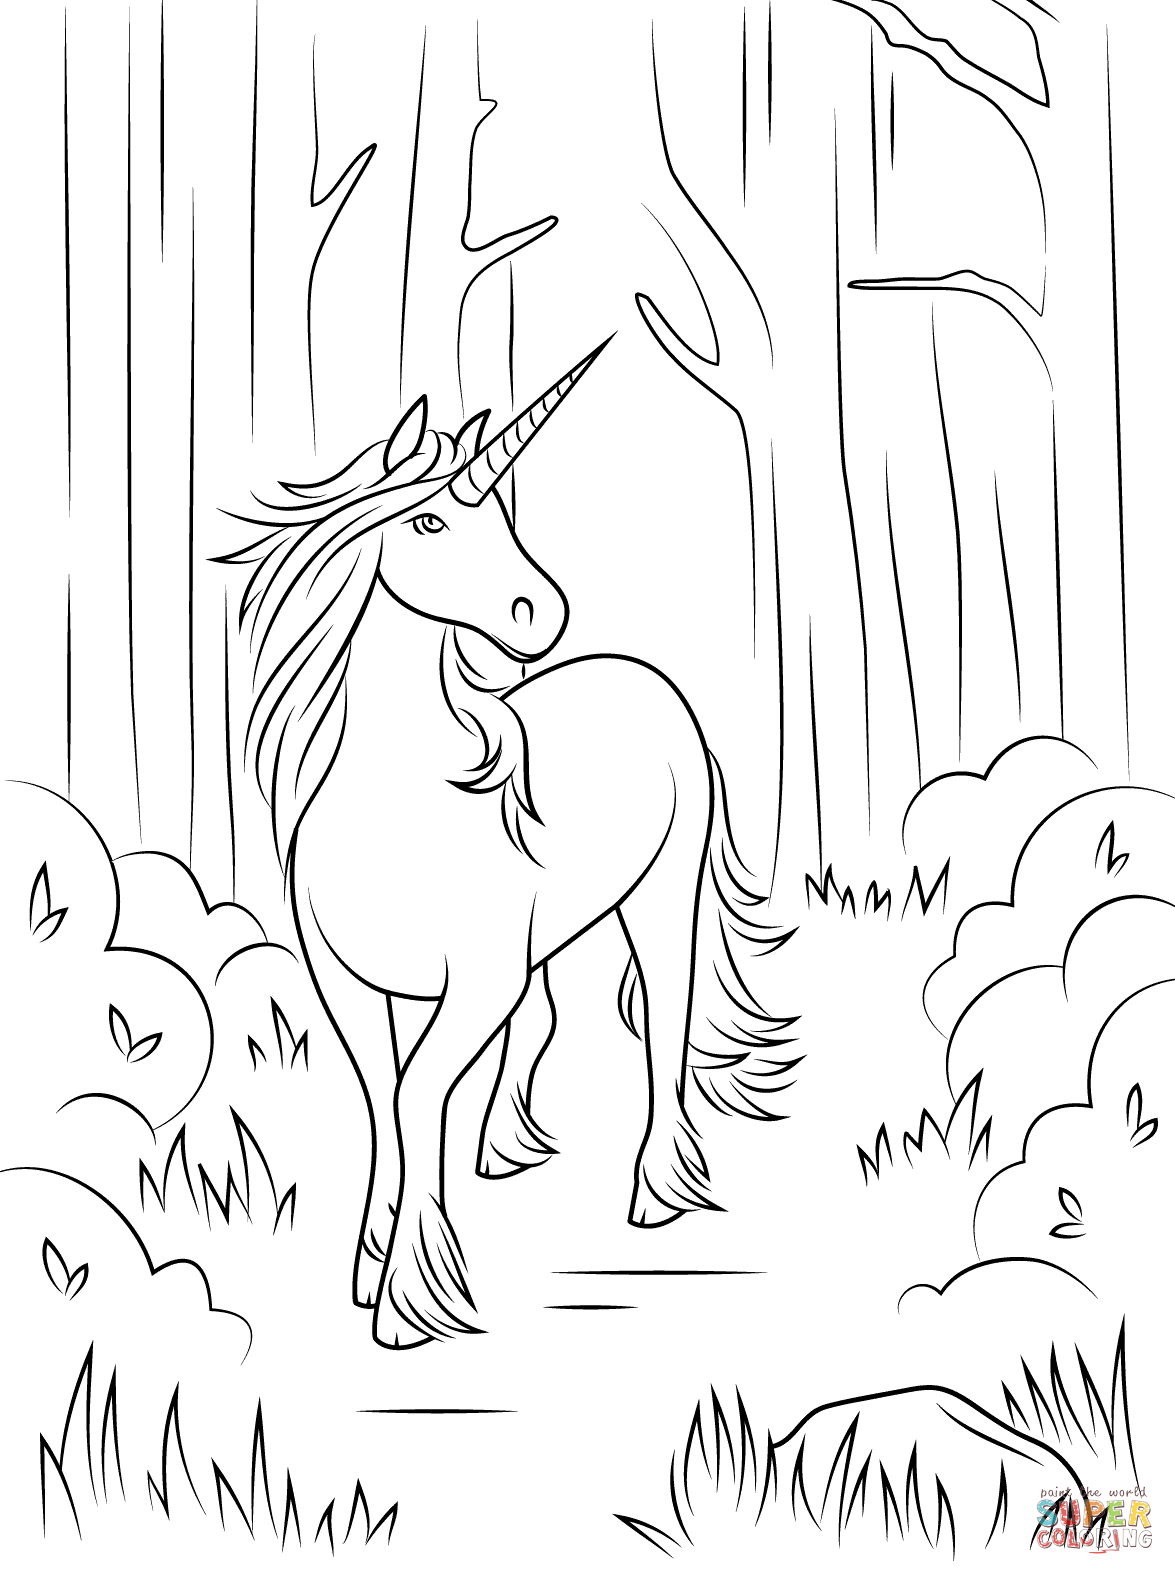 Free printable coloring pages for adults unicorns - Forest Unicorn Coloring Page Free Printable Coloring Pages